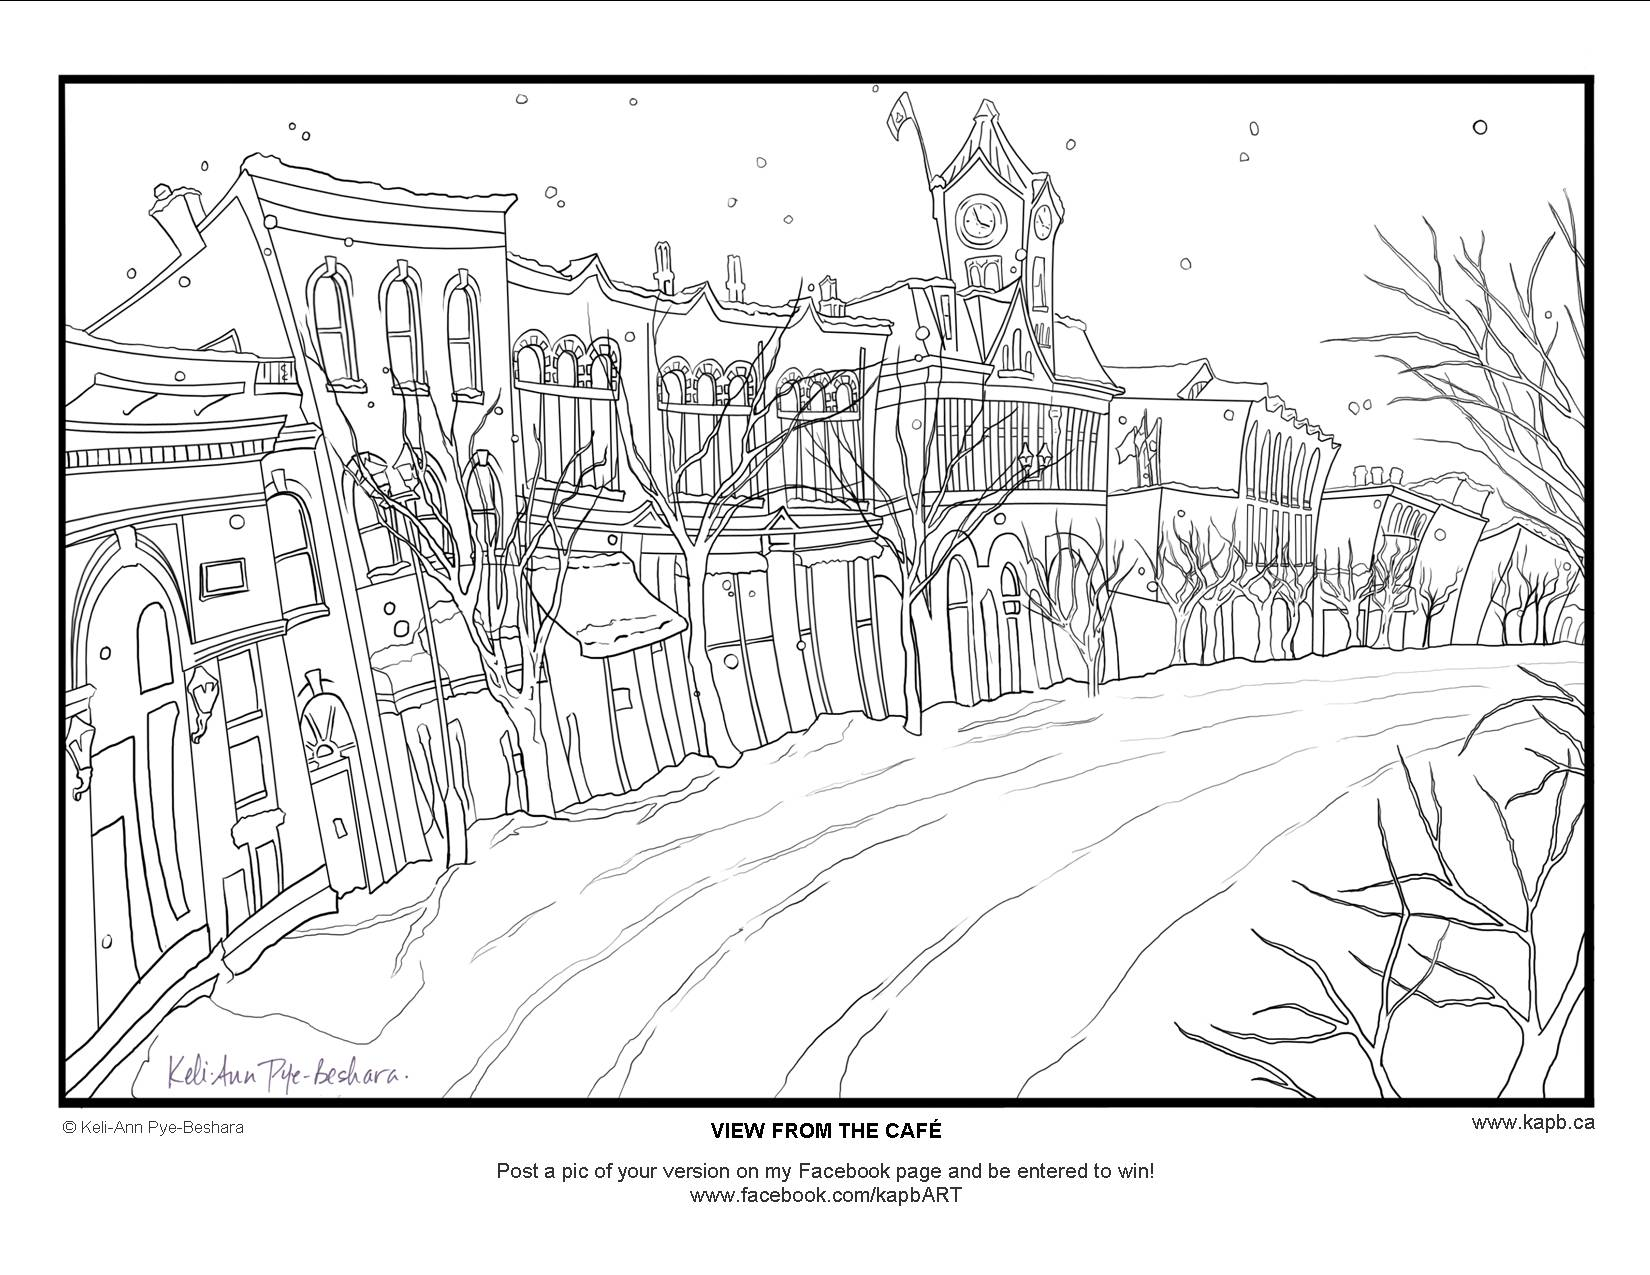 newfoundland flag coloring page download newfoundland coloring for free designlooter page coloring flag newfoundland